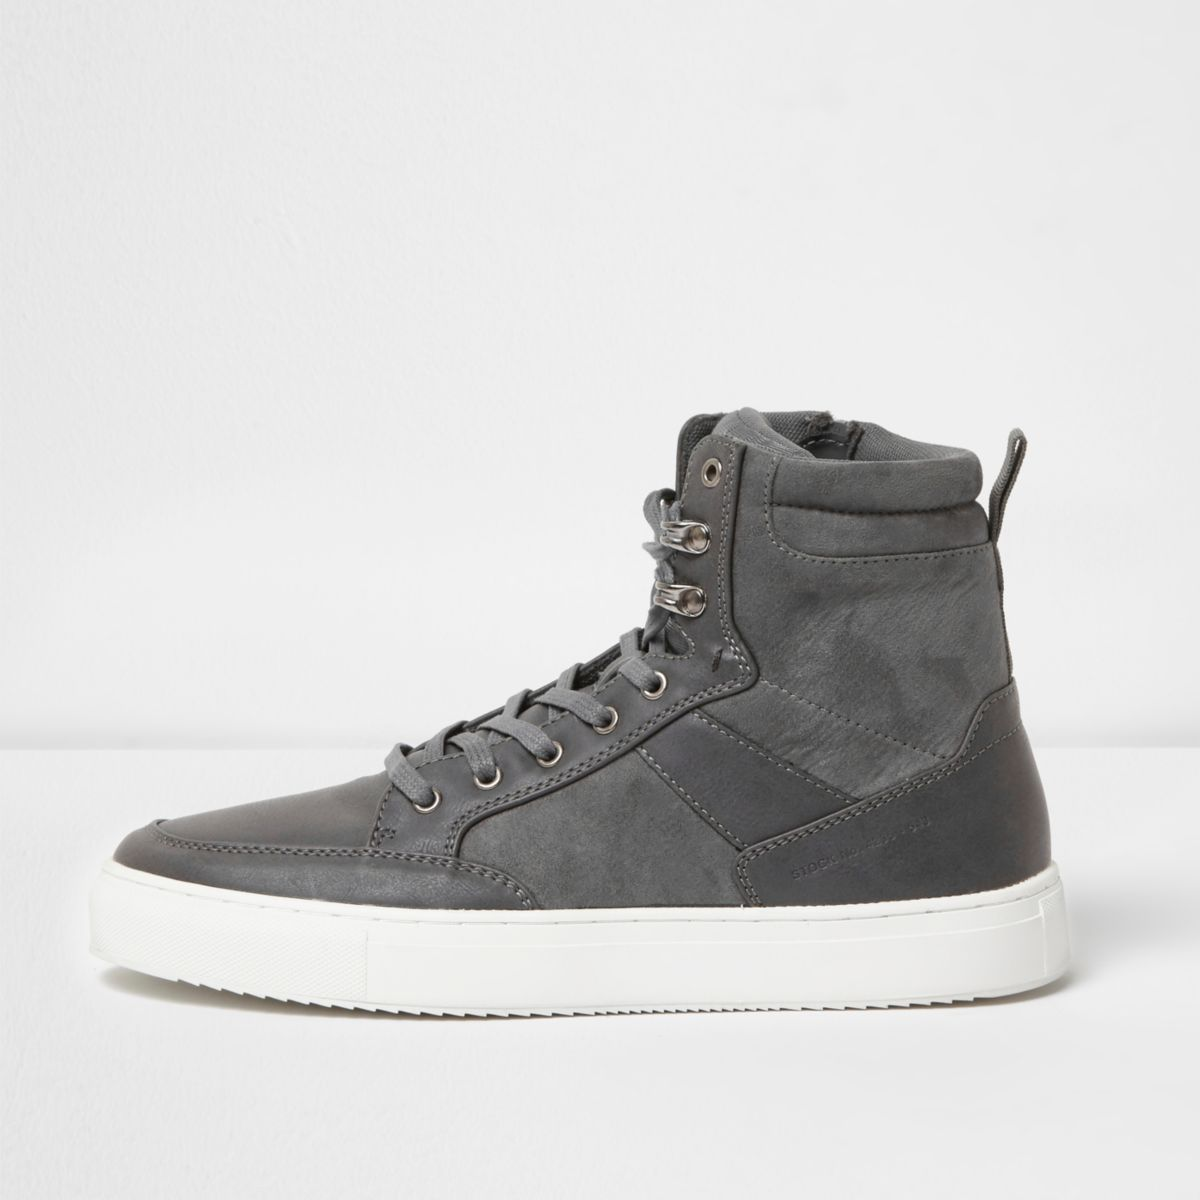 Grey high top contrast sole lace-up trainers